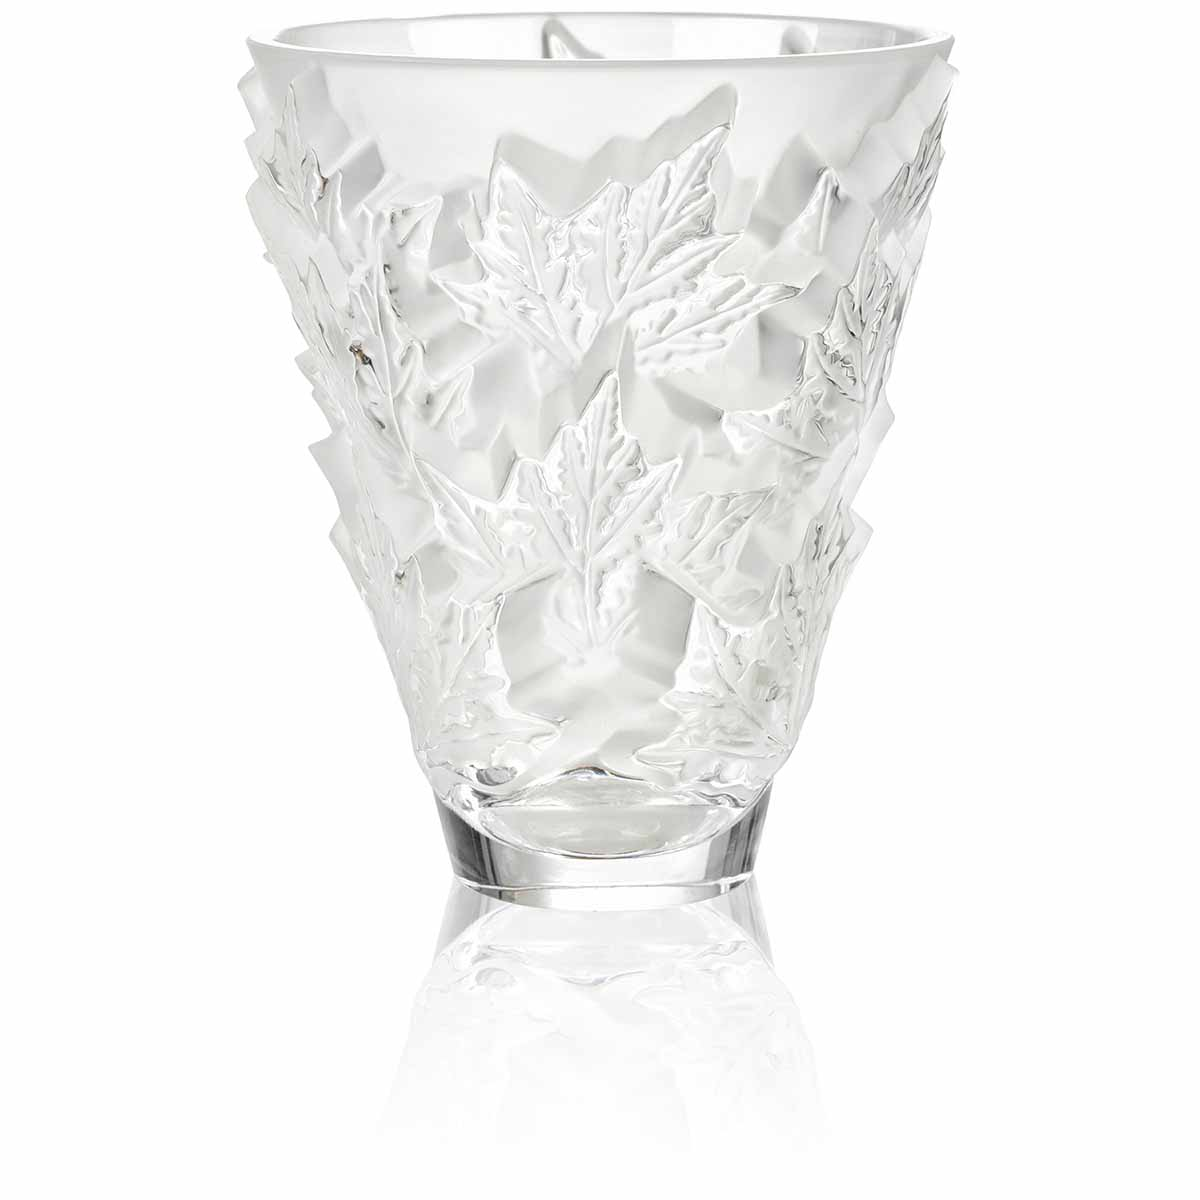 champs elysees vase small by lalique glass international art collector - Lalique Vase